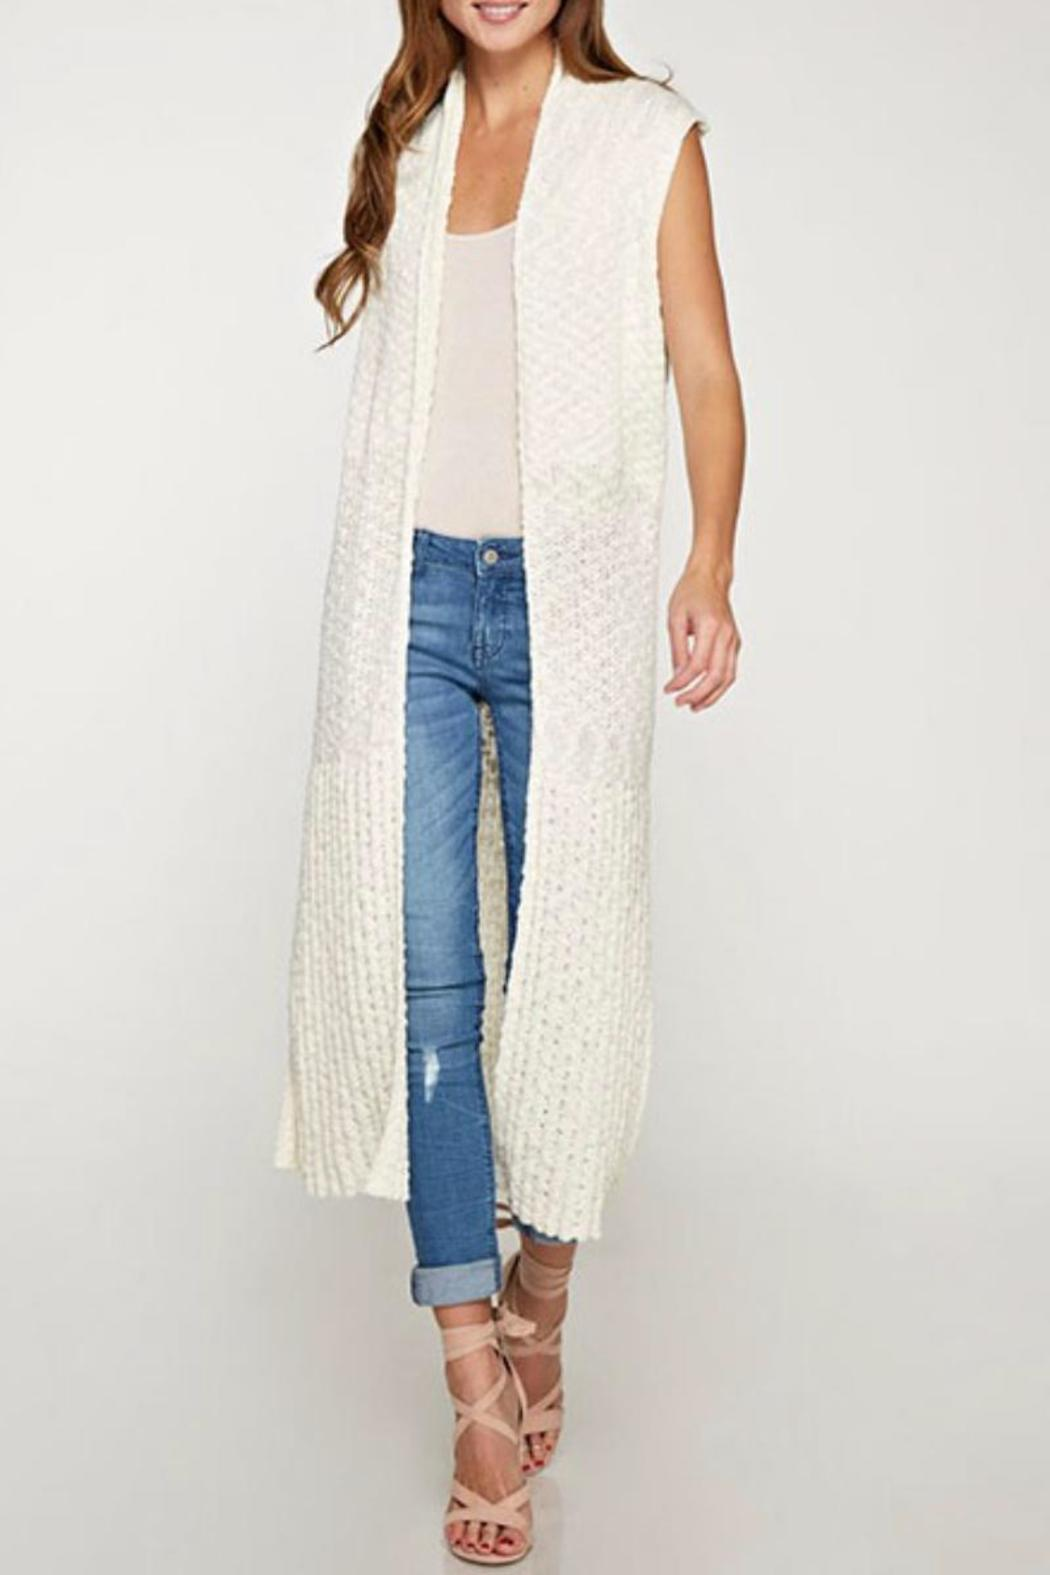 Lovestitch Duster Sweater Vest from Los Angeles by Karen Michelle ...